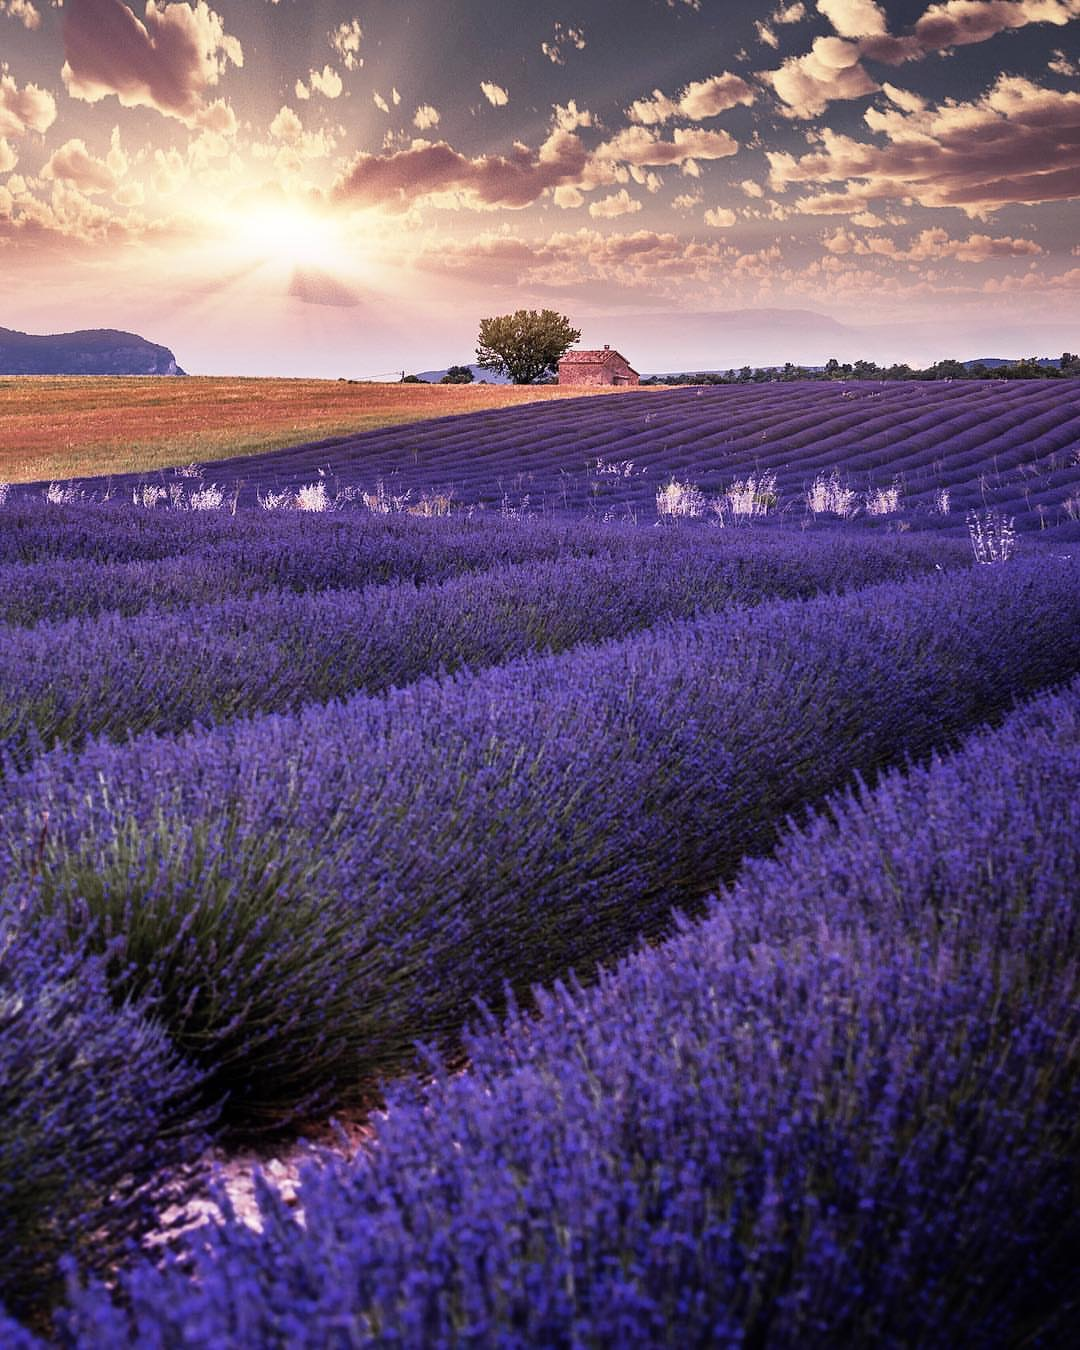 Lavender fields little french hearts Christofs70